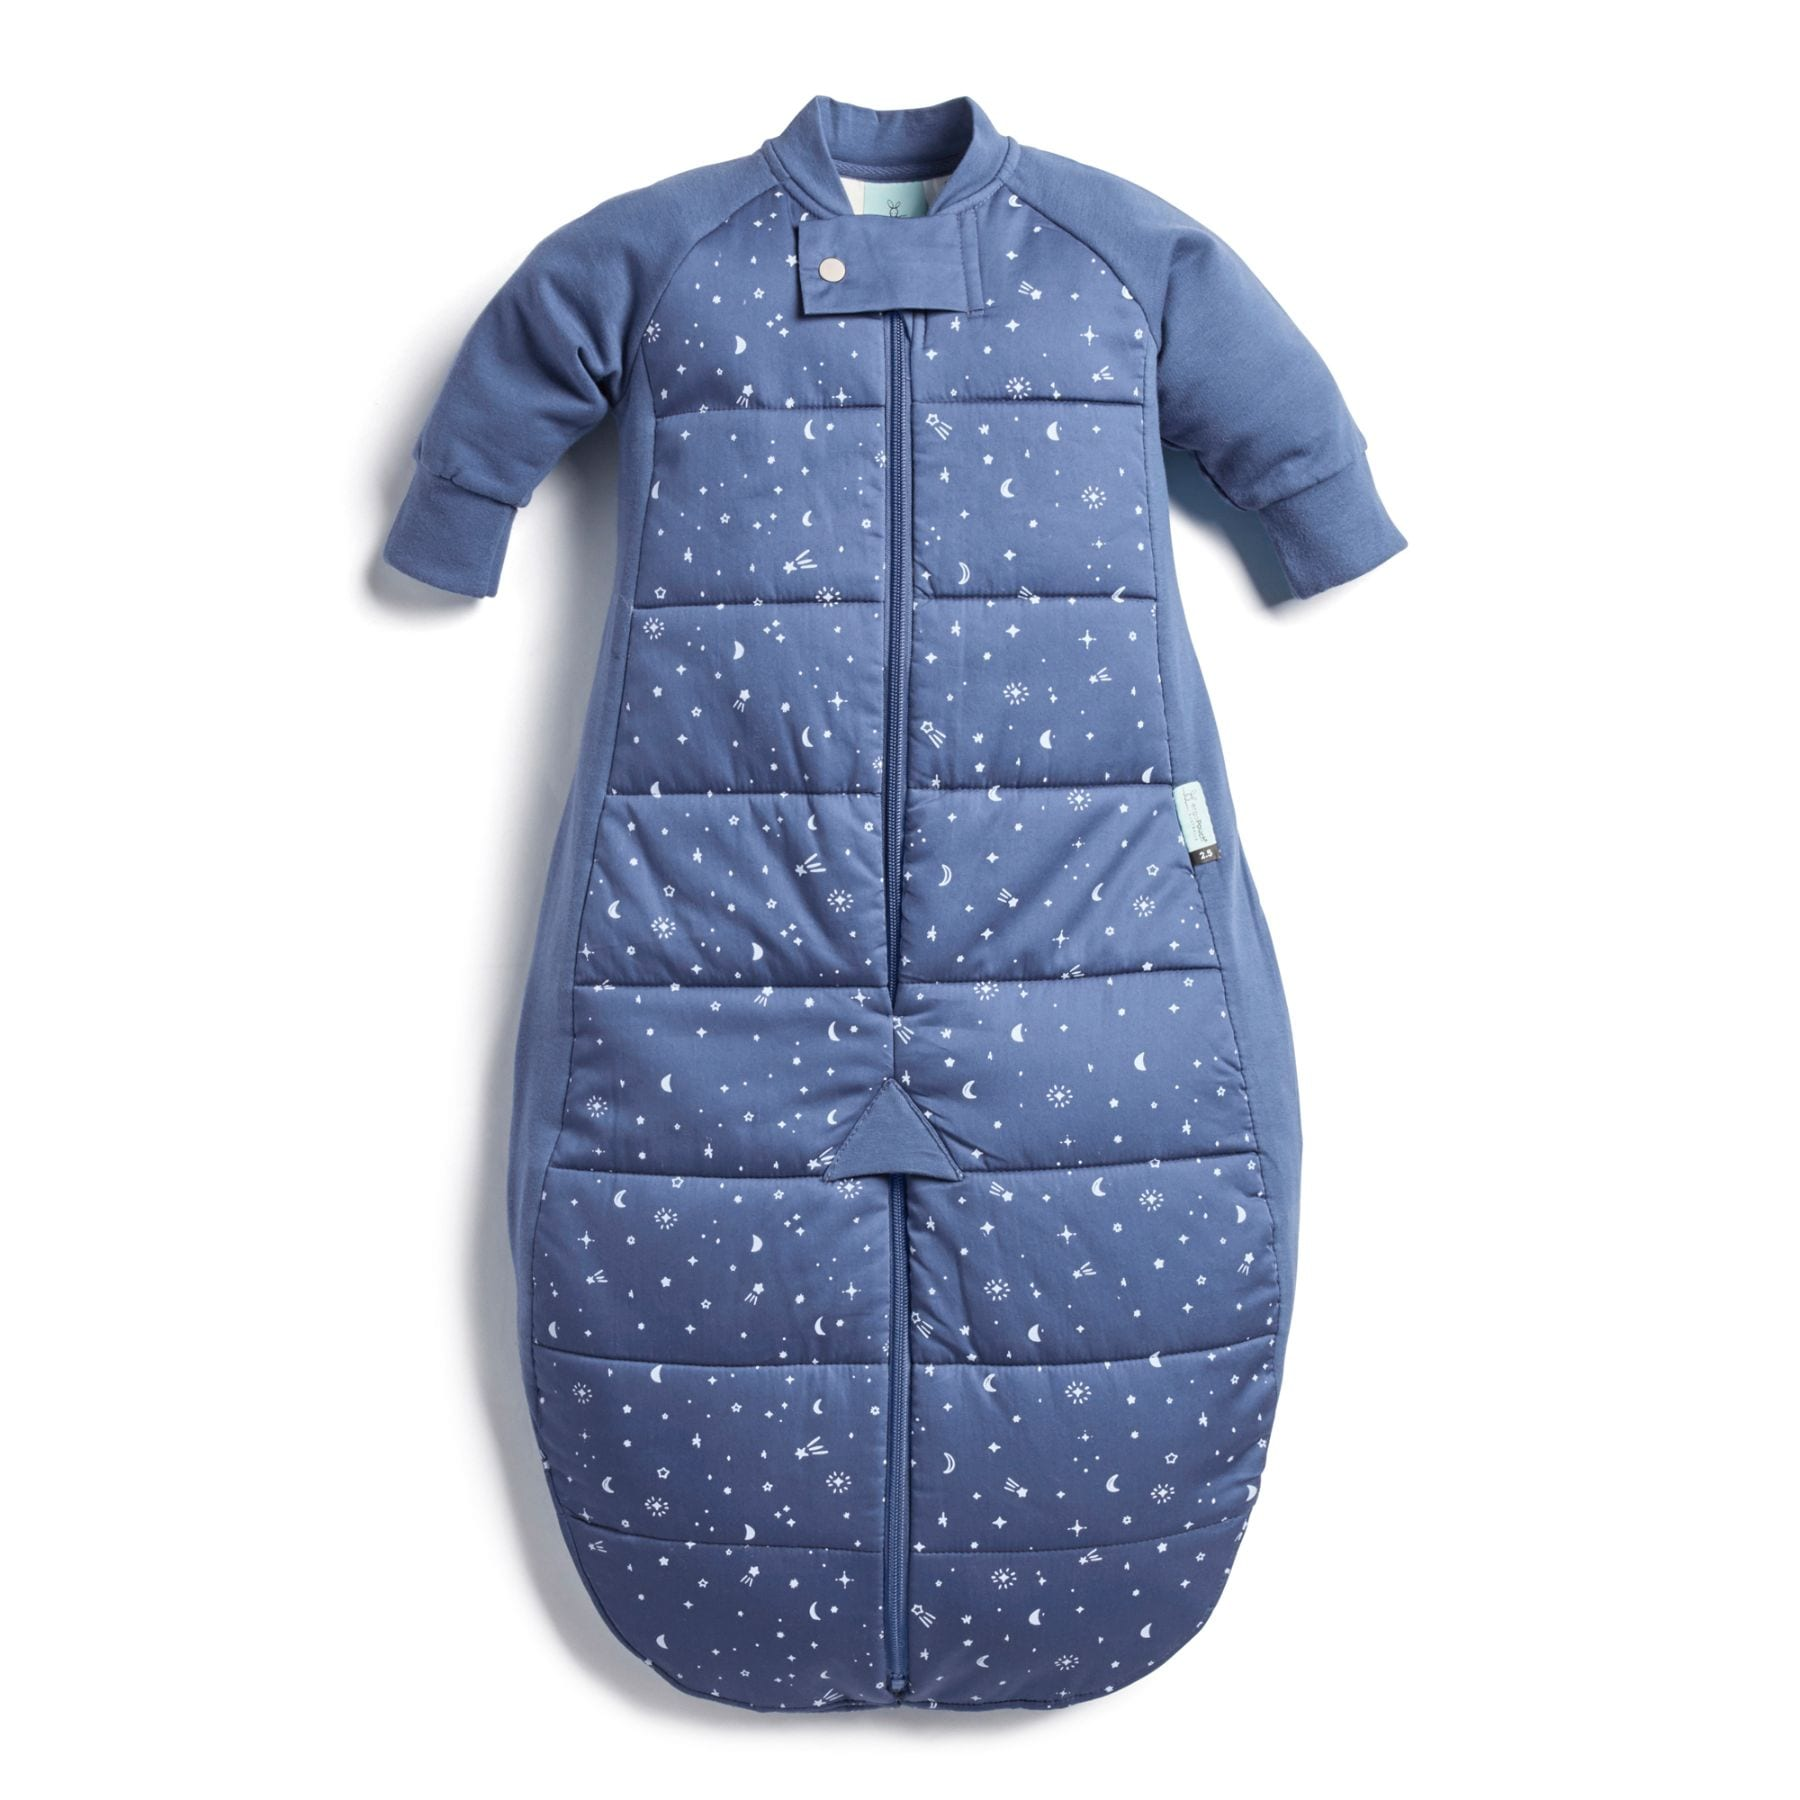 Ergopouch 2.5 TOG Sleep Suit Bag - Night Sky